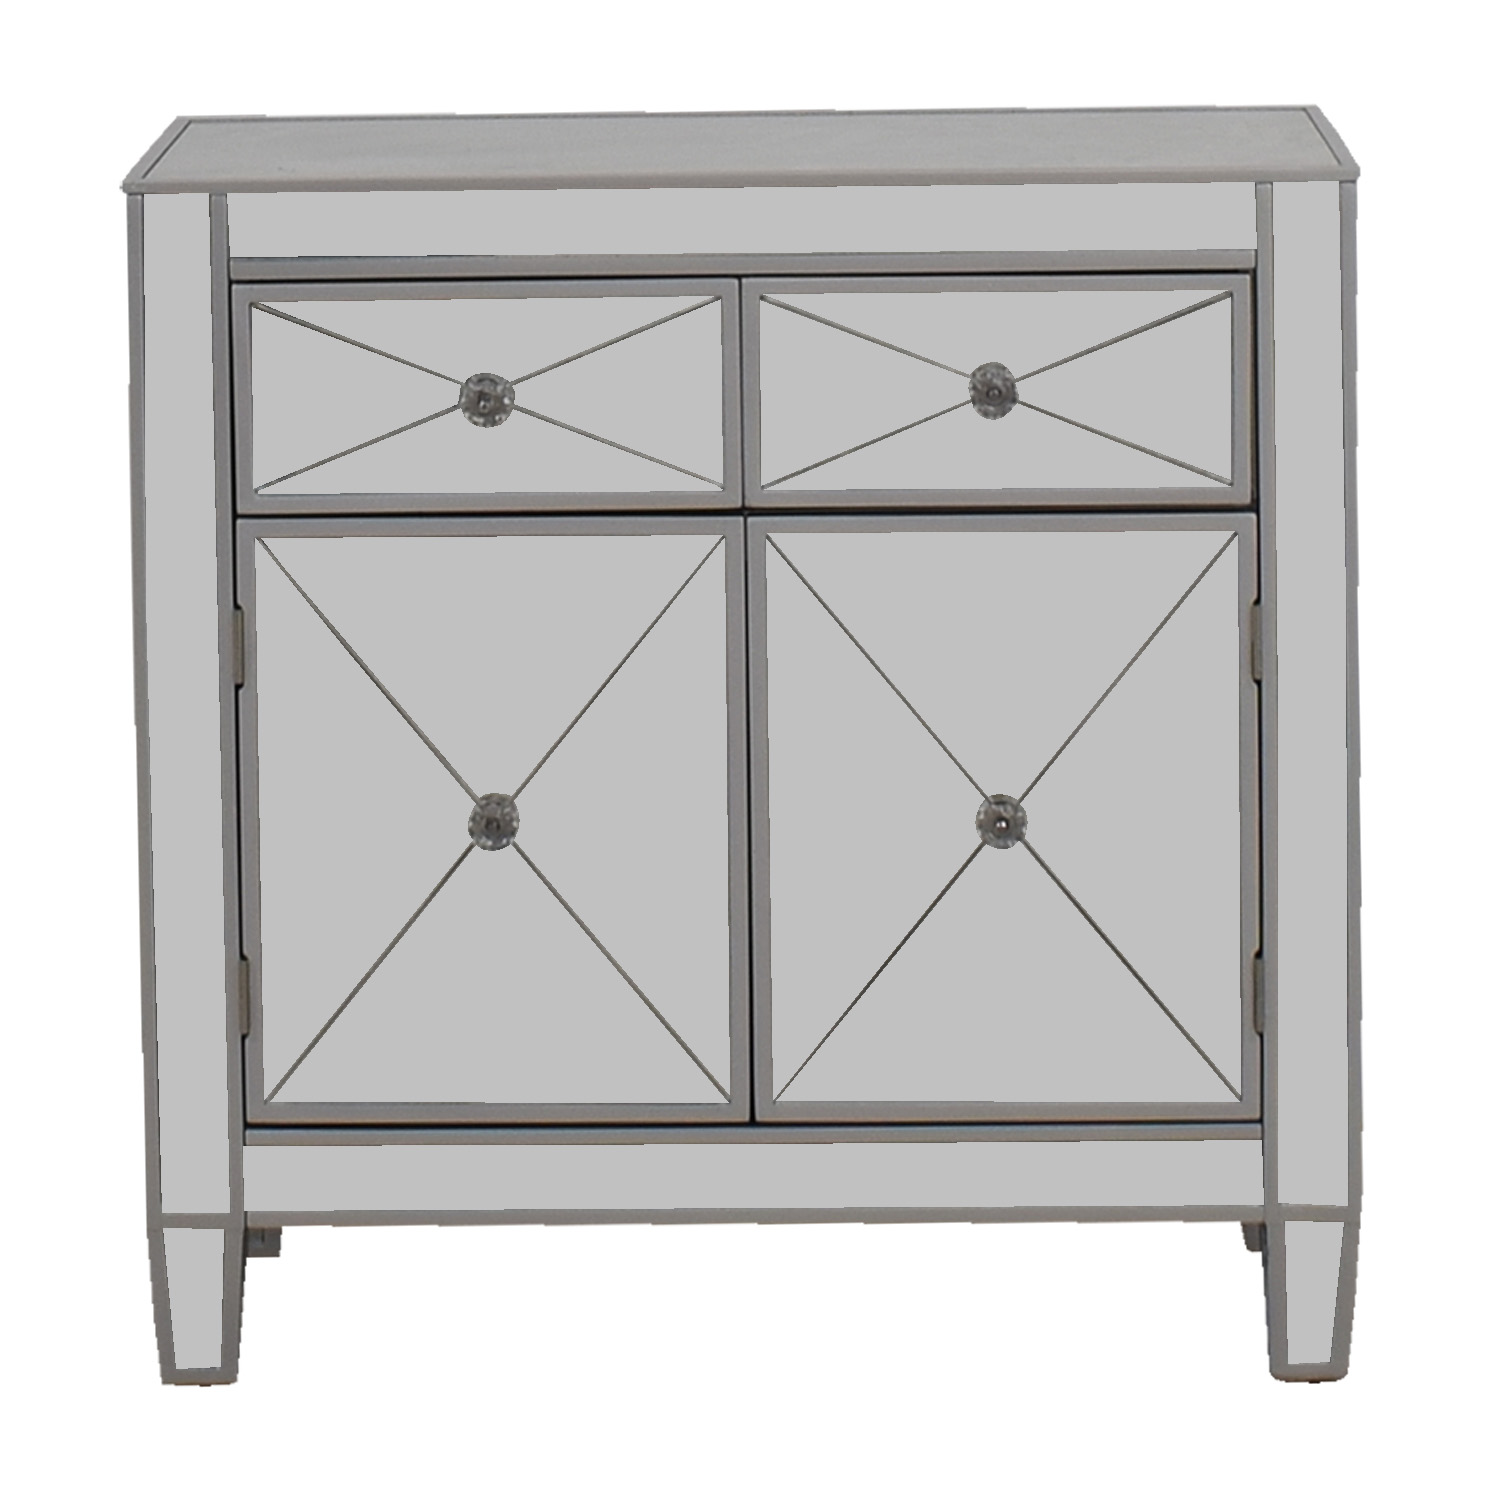 shop Wayfair Two-Drawer Mirrored Dresser Wayfair Dressers